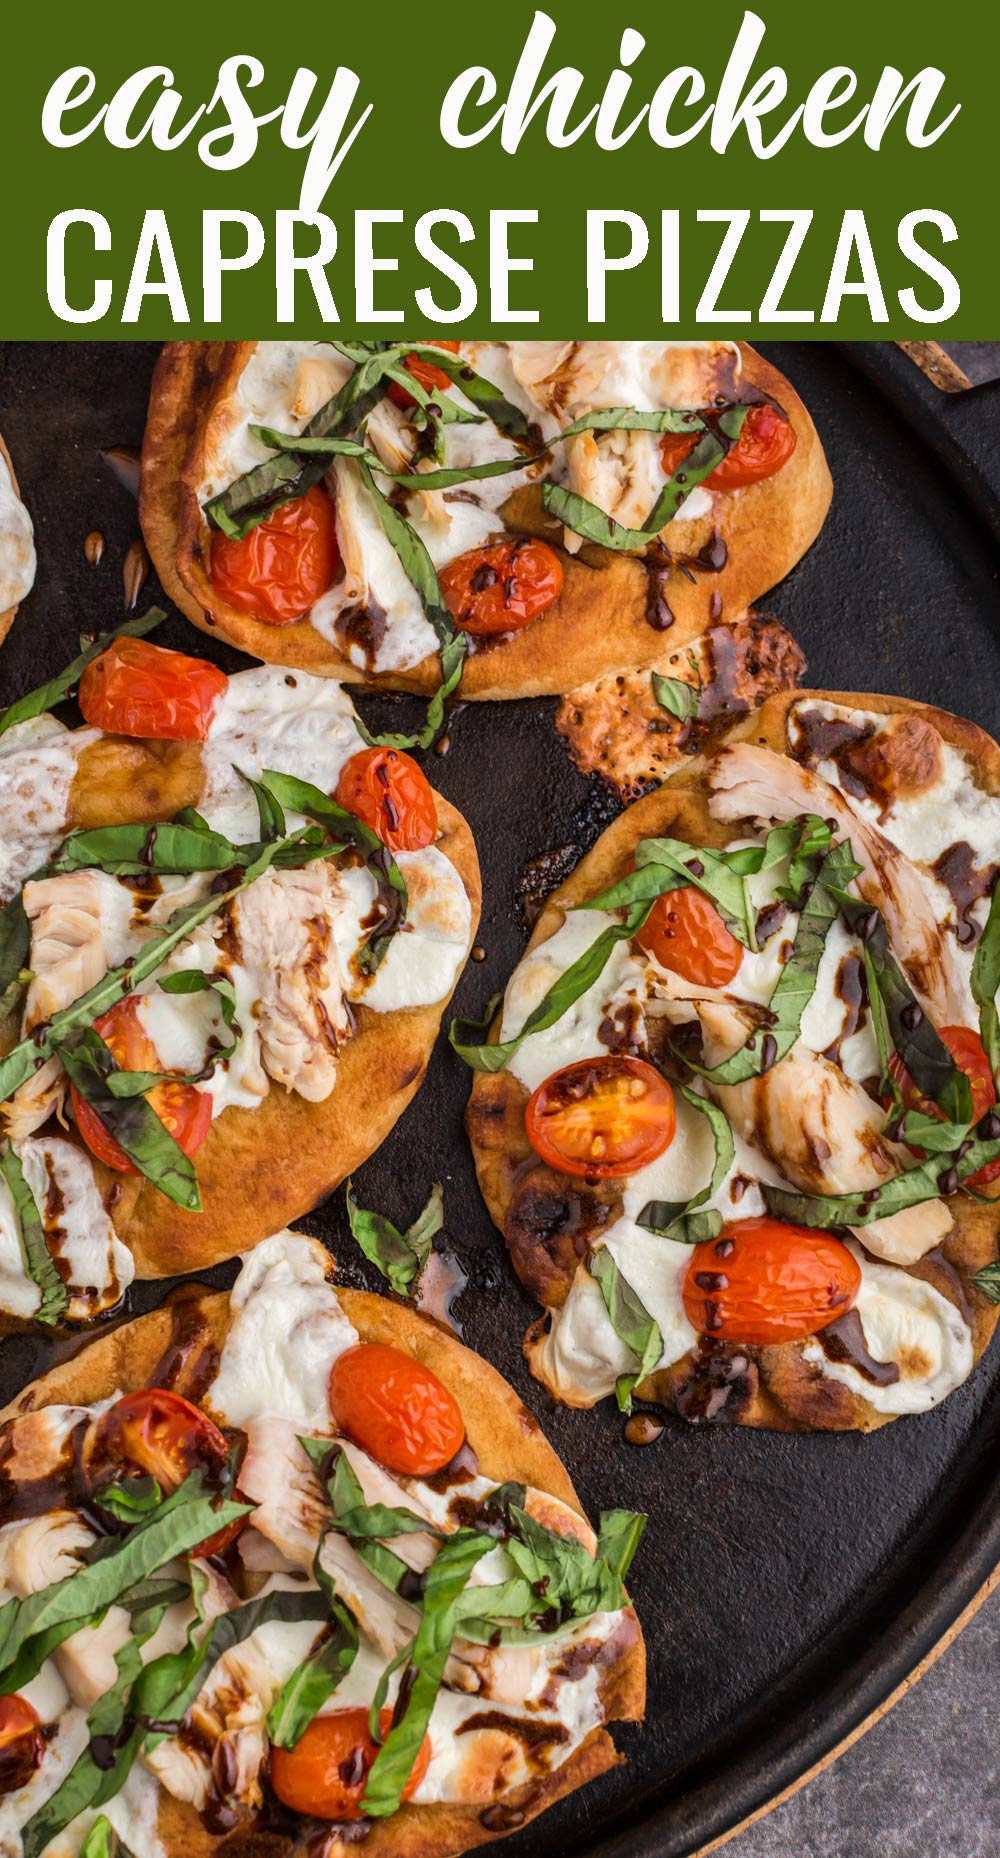 If you like the amazing flavors of fresh tomatoes, mozzarella and basil, then you'll LOVE this chicken caprese pizza. Made on Naan bread, and topped with chicken and all your Caprese favorites, this pizza is the ultimate in flavor and freshness! via @tastesoflizzyt